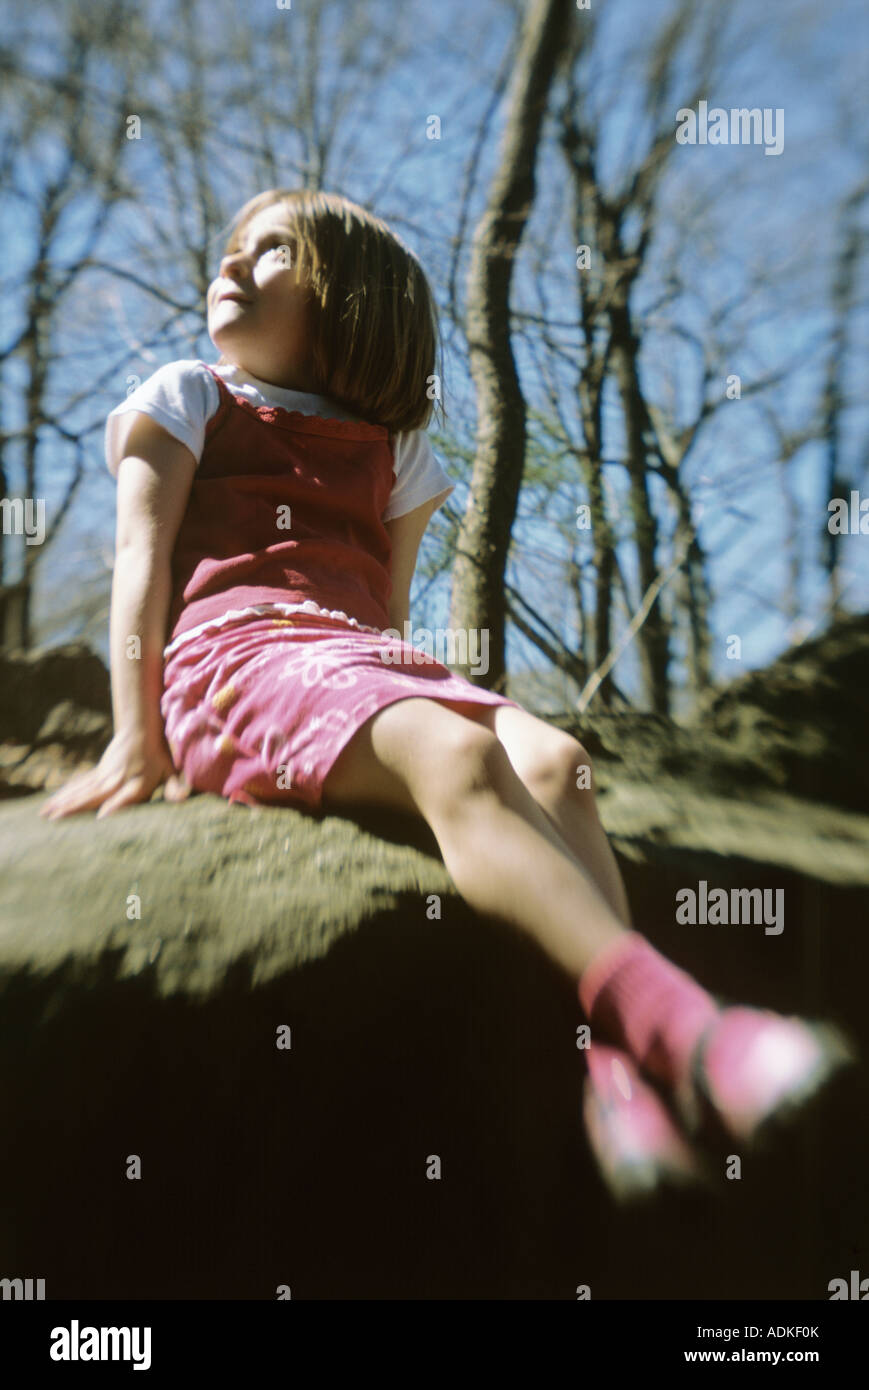 Little girl sitting on rock at park, looking upward - Stock Image